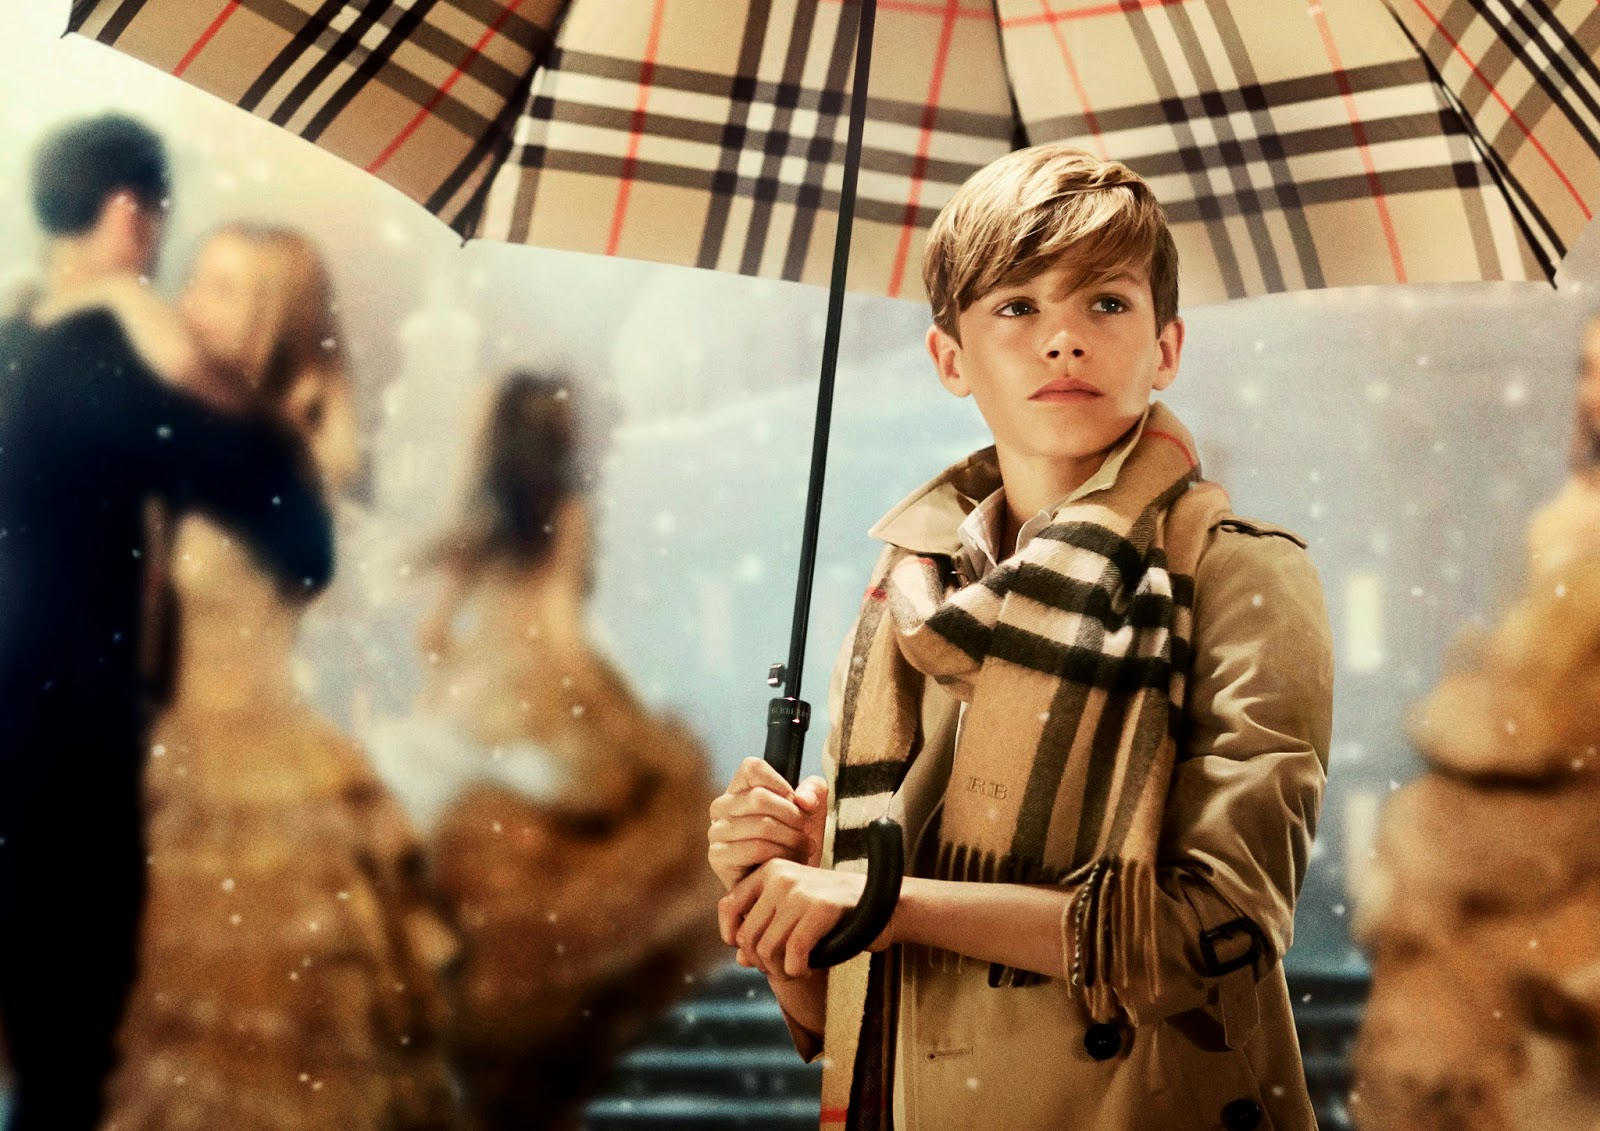 Burberry's Festive Campaign Starring Romeo Beckham Has Landed!